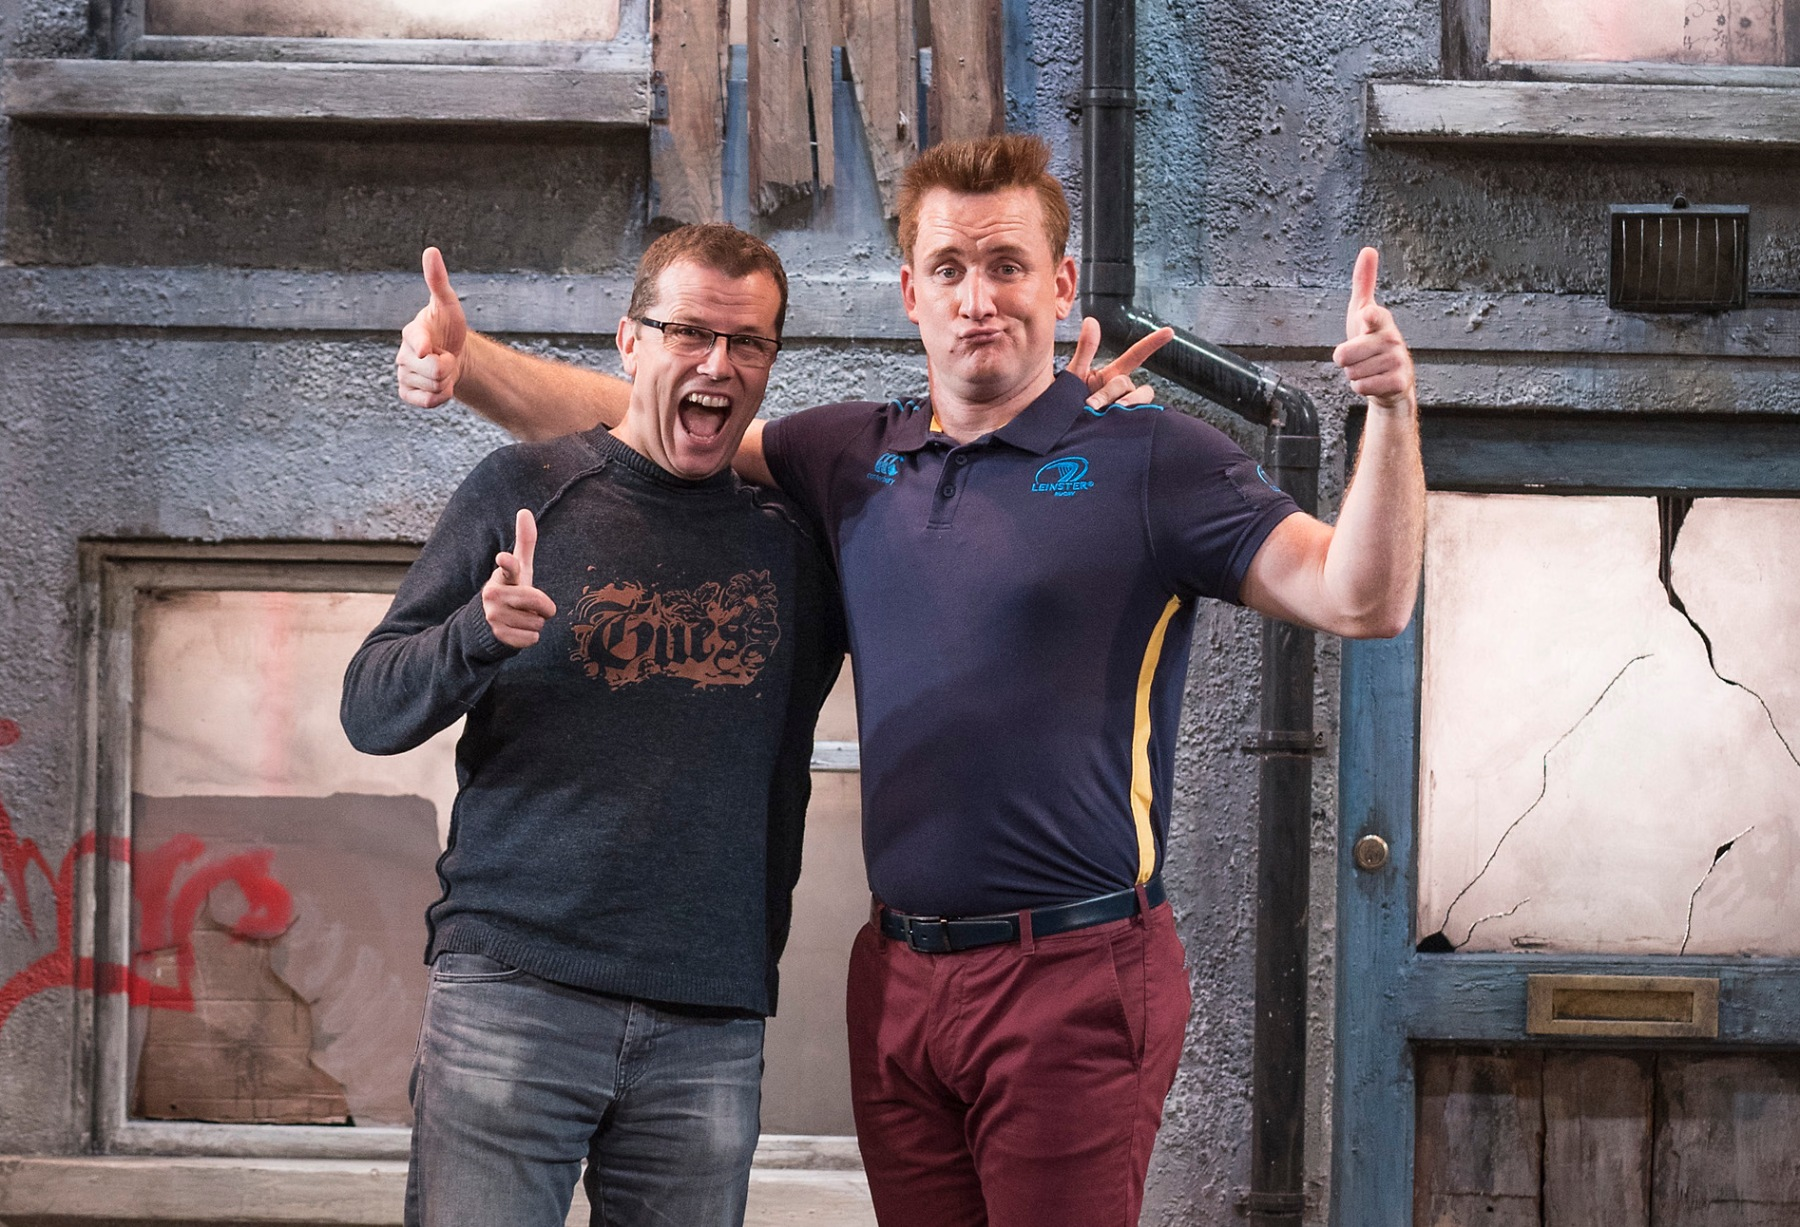 Paul Howard and Rory Nolan on the set of Ross O'Carroll-Kelly's Postcards from the Ledge at The Gaiety Theatre Oct 25 - Nov 11, 2017